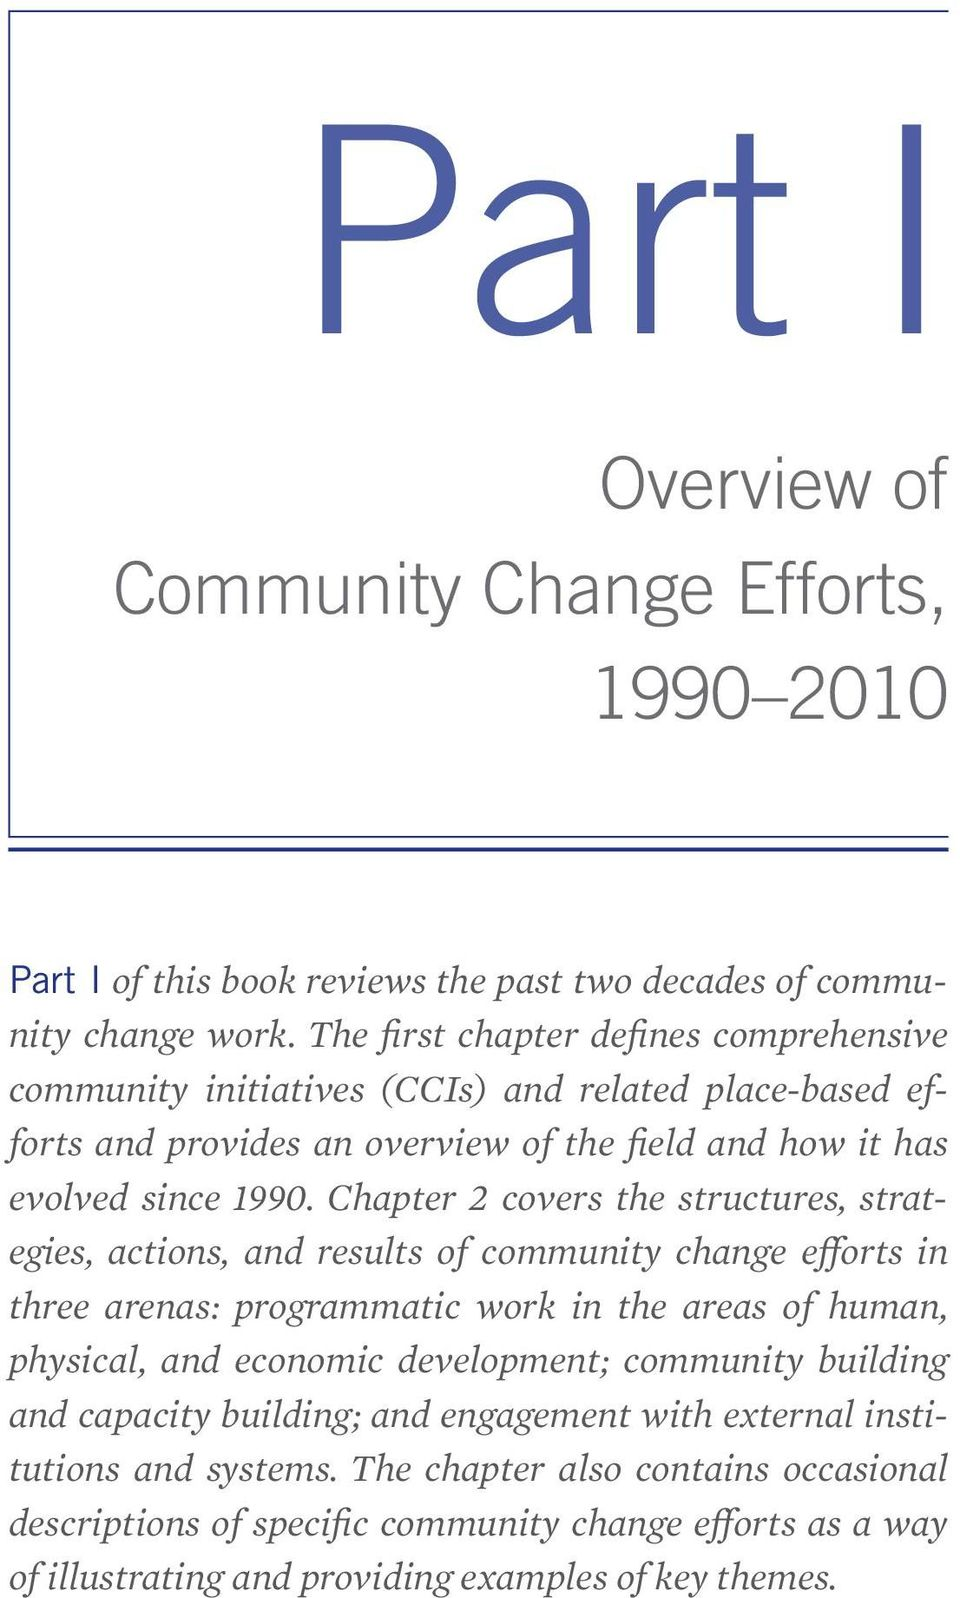 Chapter 2 covers the structures, strategies, actions, and results of community change efforts in three arenas: programmatic work in the areas of human, physical, and economic